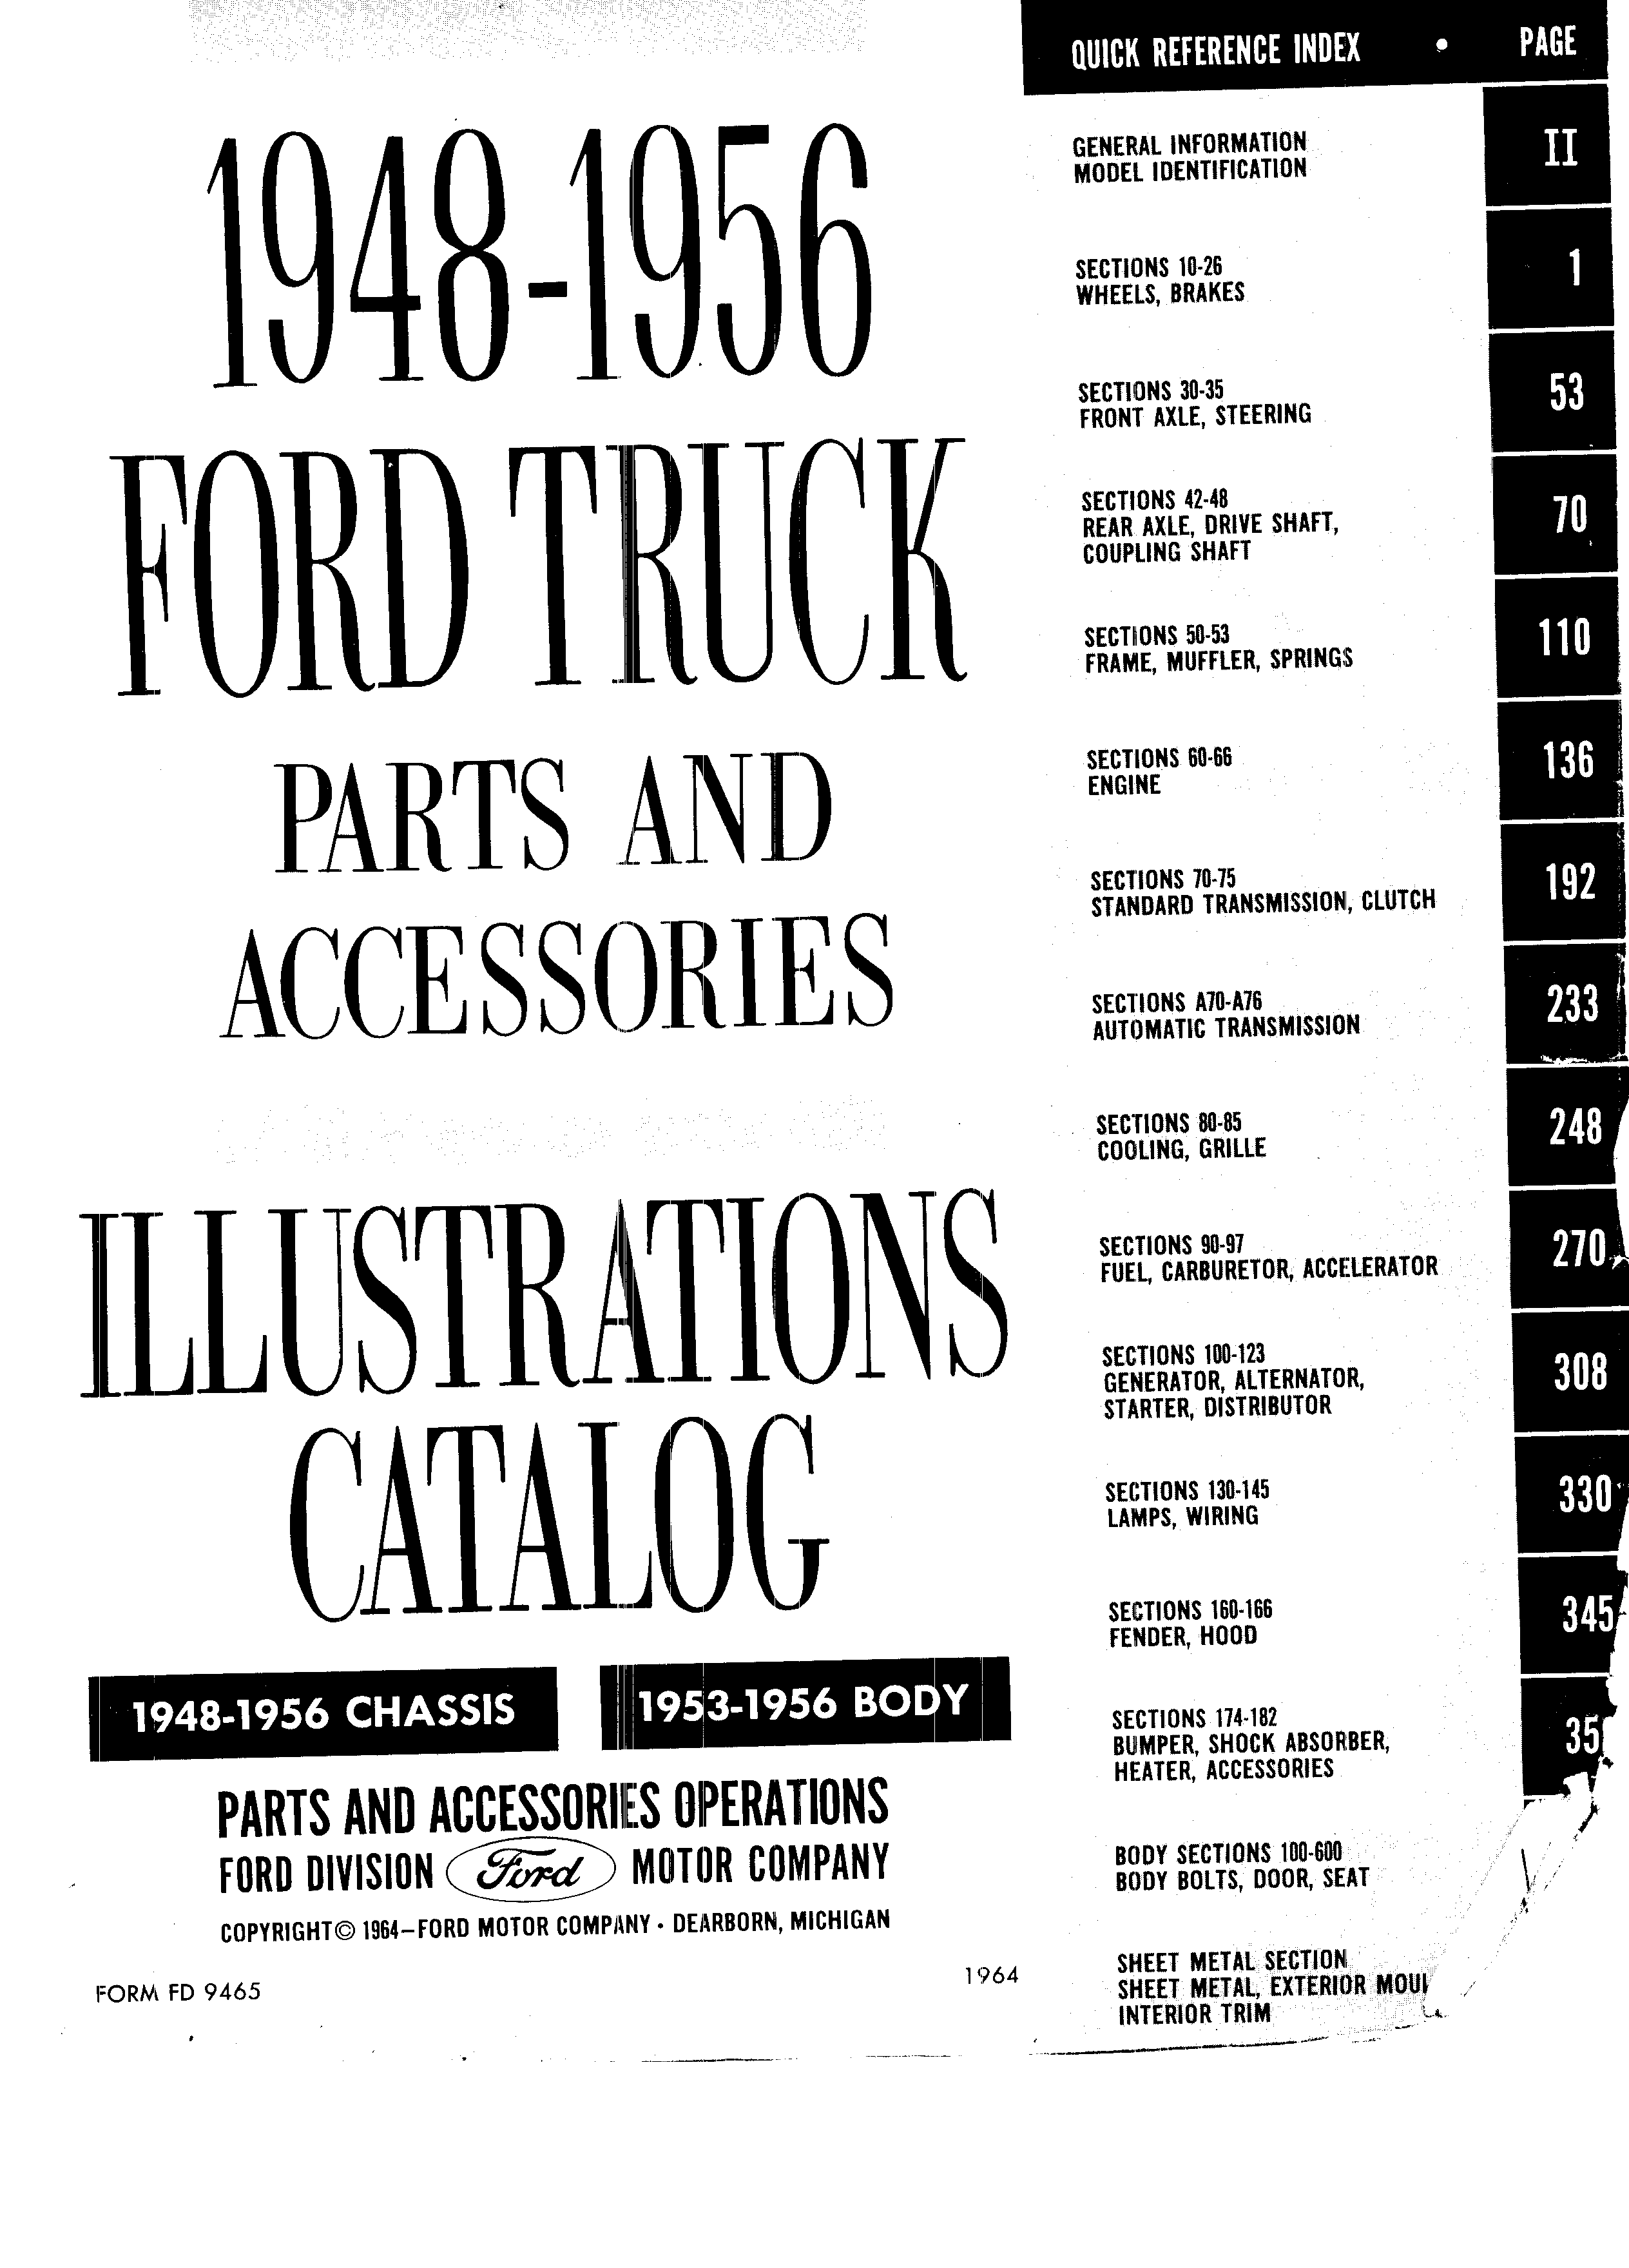 Ford Truck Parts and Accessories Illustration Catalog FD 9465 January 1964